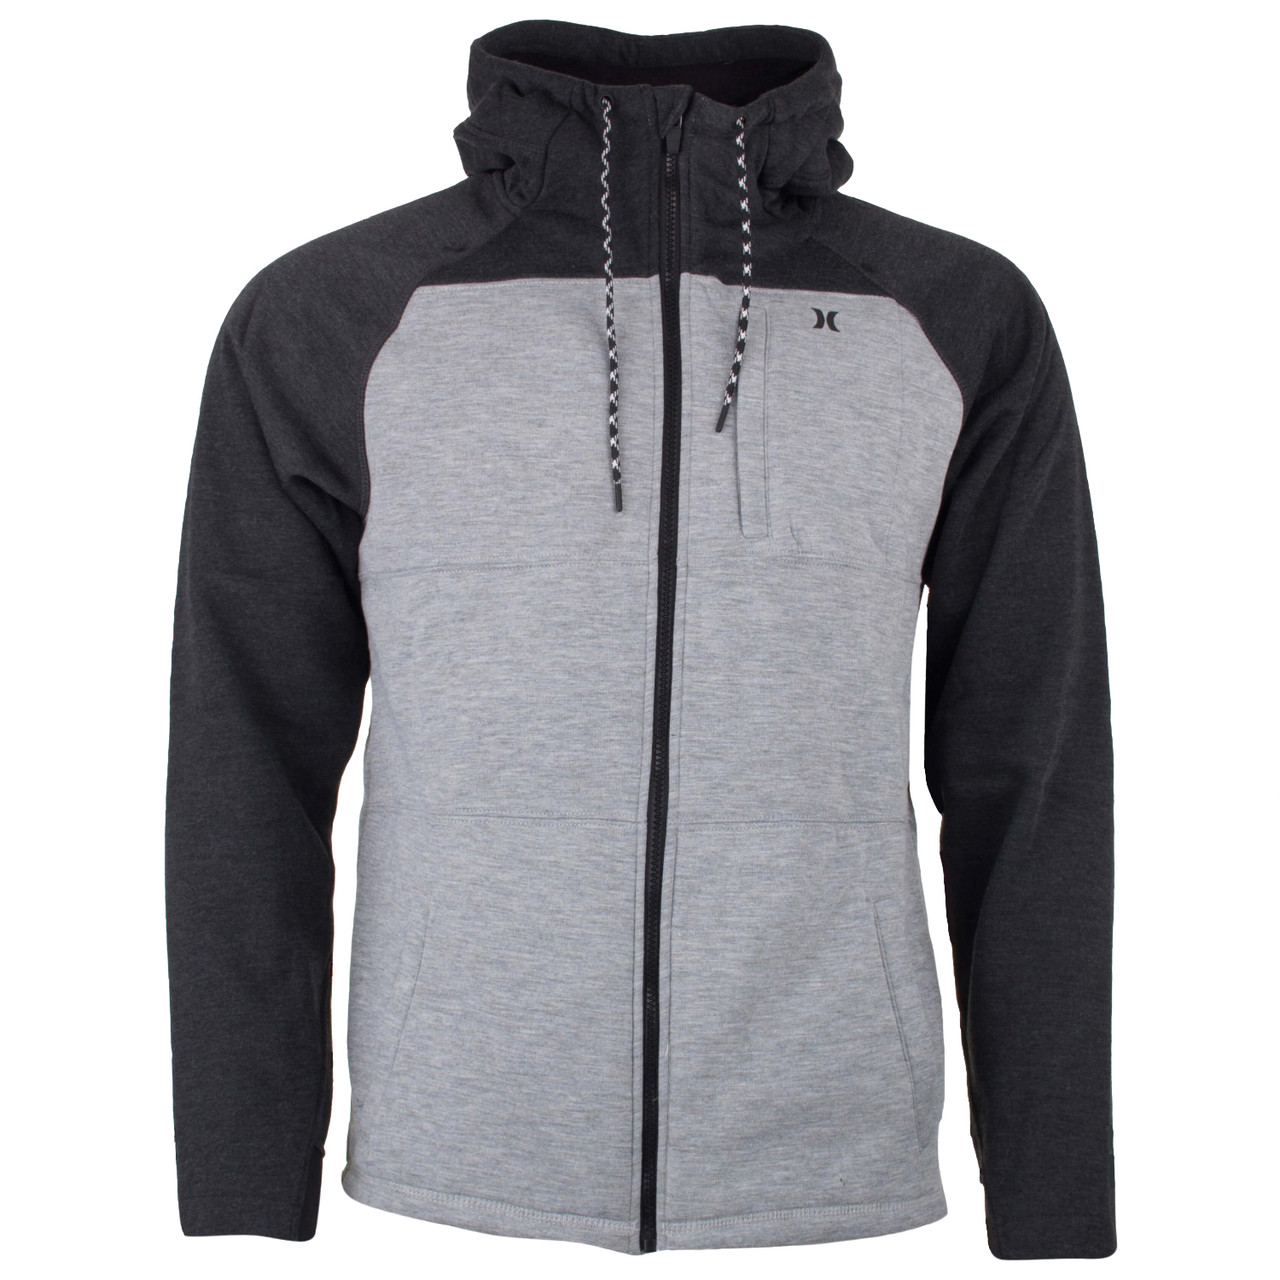 outlet store 100% quality separation shoes Hurley Jacket - Therma Protect Plus - White/Black - Surf and Dirt